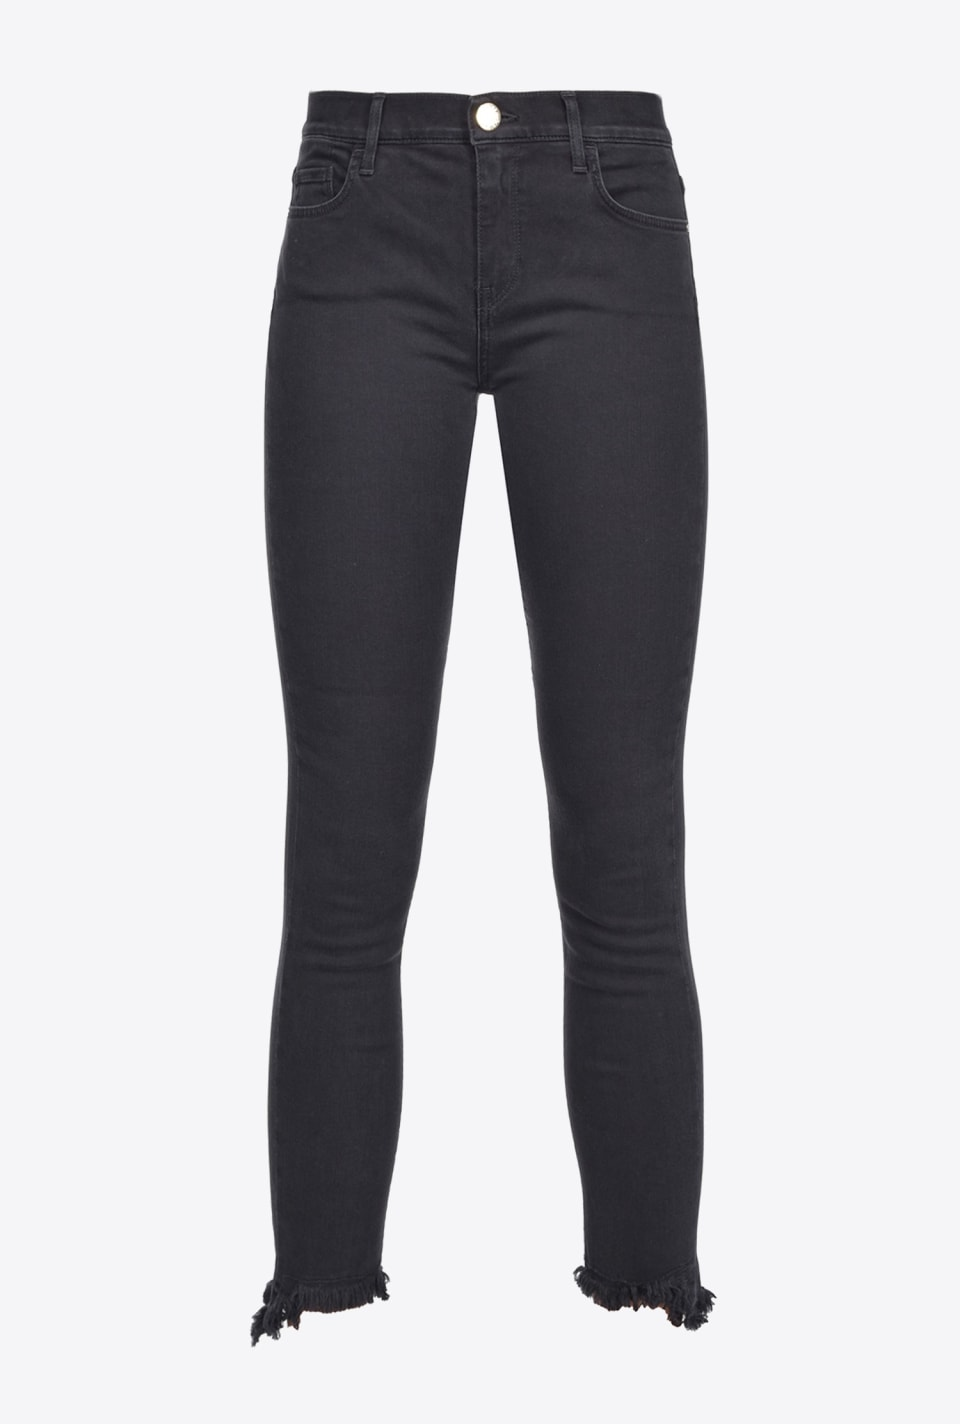 Skinny jeans in black denim - Pinko